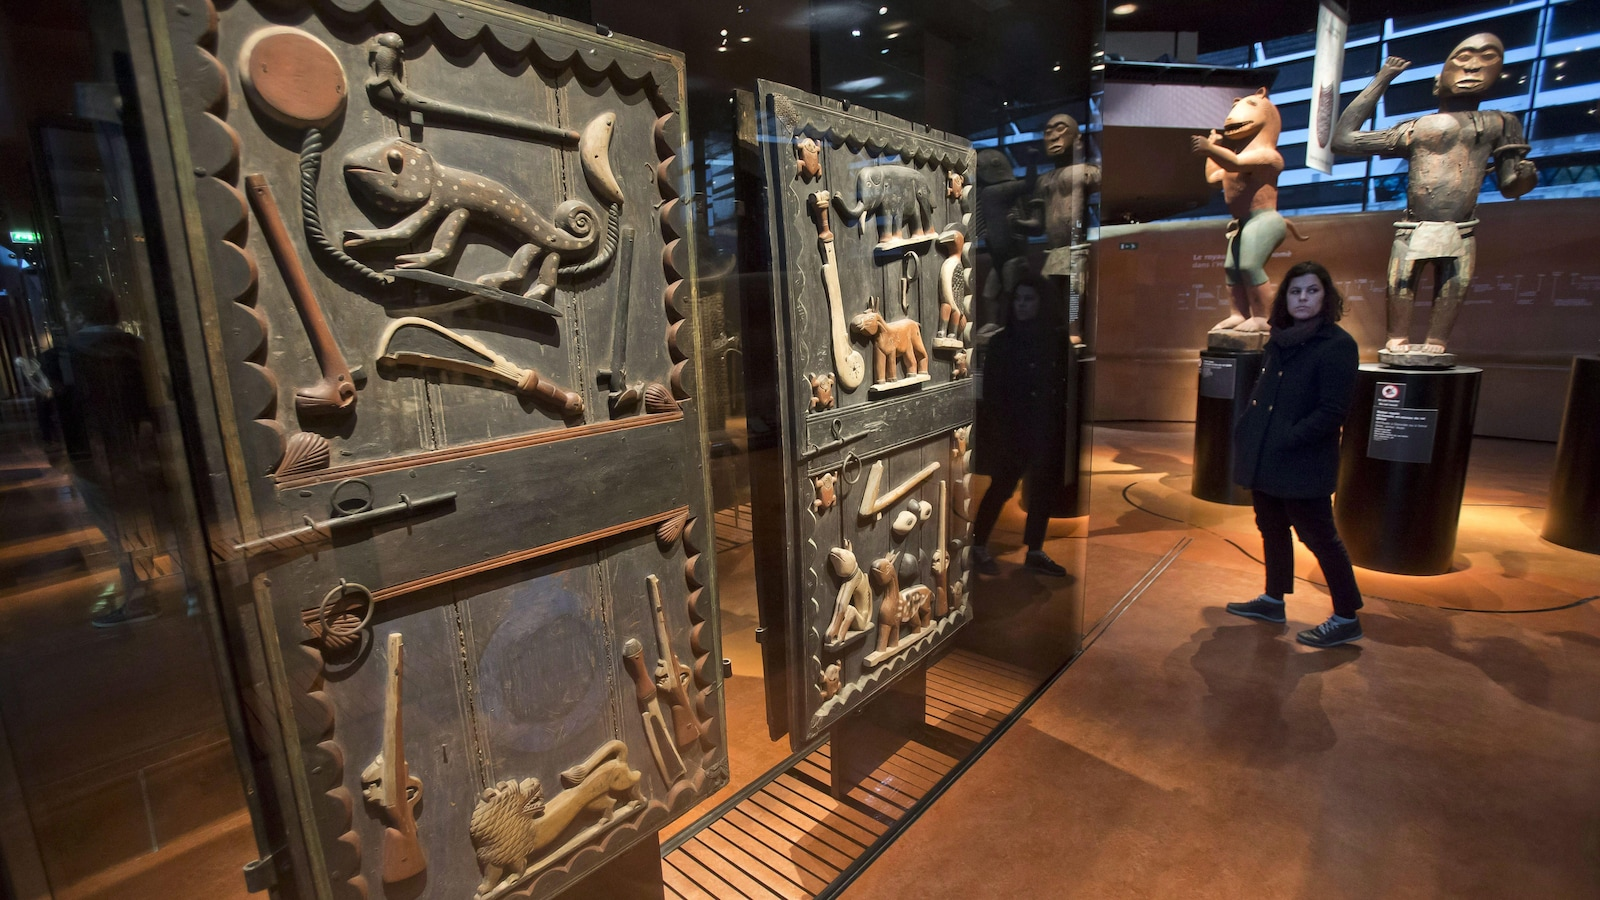 A visitor walks past a door of the king's palace Gele of the Dahomey kingdom, dated19th century, today's Benin, at Quai Branly museum in Paris, France, Friday, Nov. 23, 2018. From Senegal to Ethiopia, artists, governments and museums are eagerly awaiting a report commissioned by French President Emmanuel Macron on how former colonizers can return African art to Africa.(AP Photo/Michel Euler)